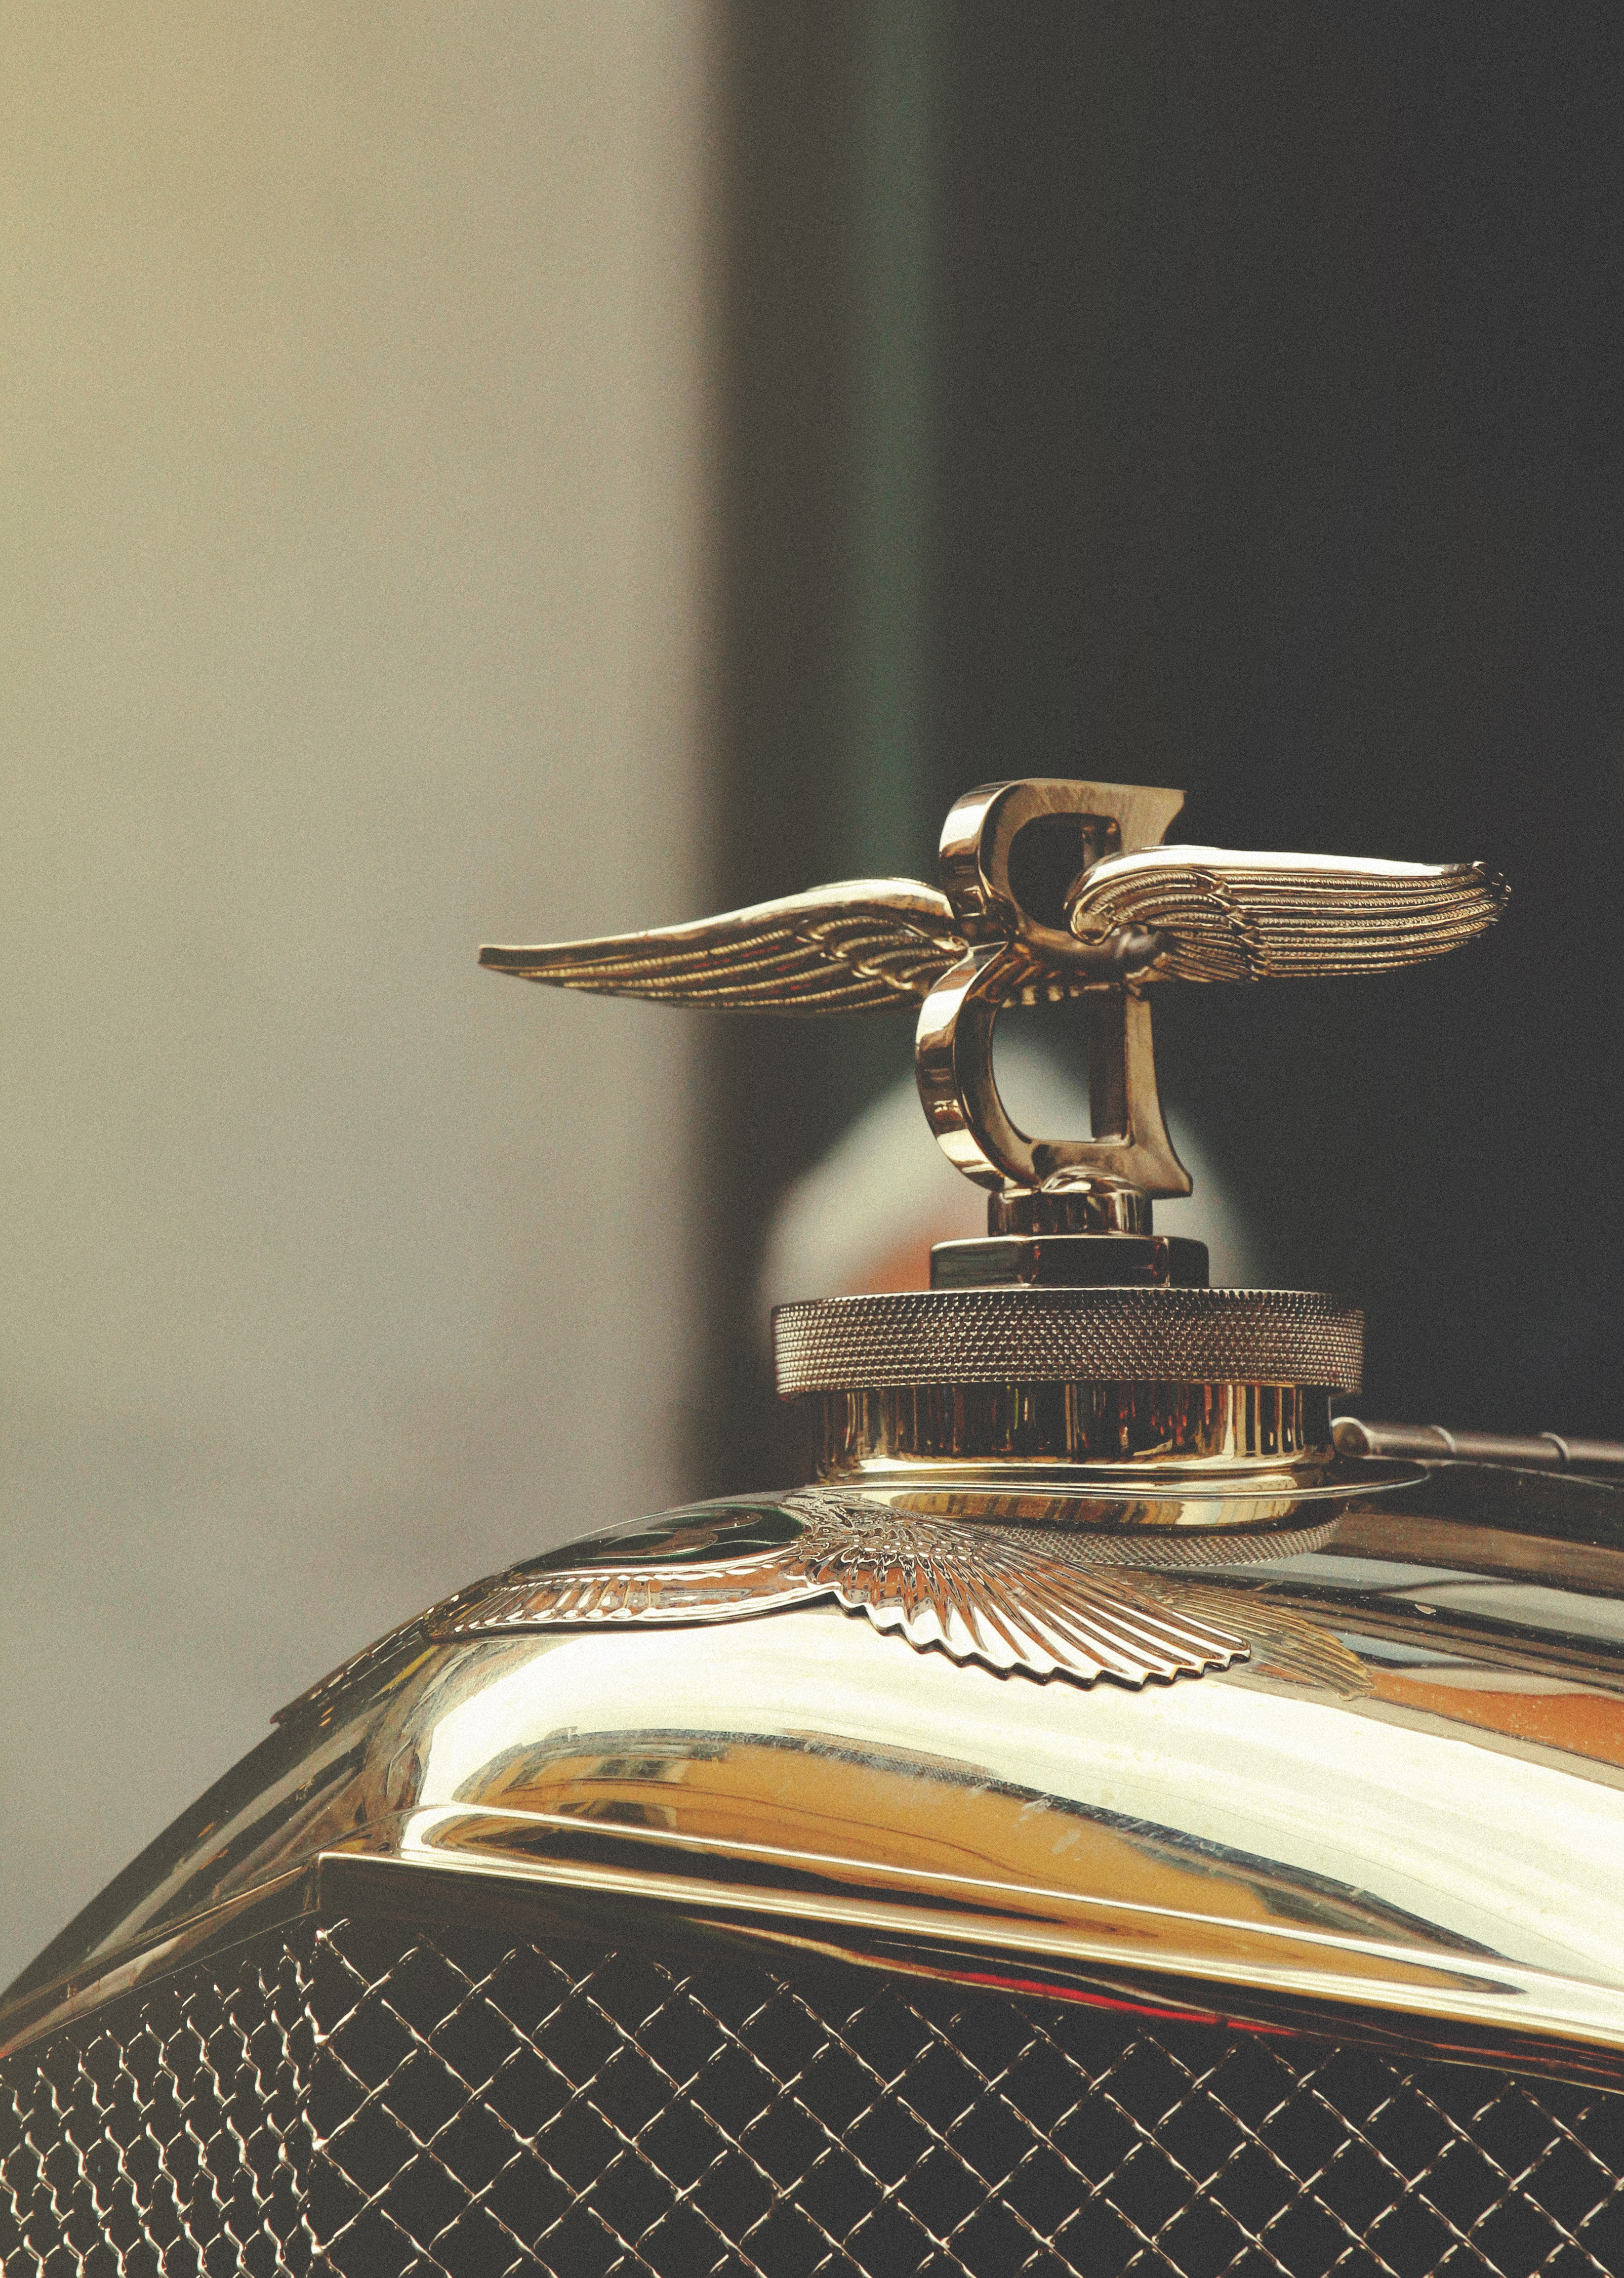 Bentley cruises into its 100th year with style